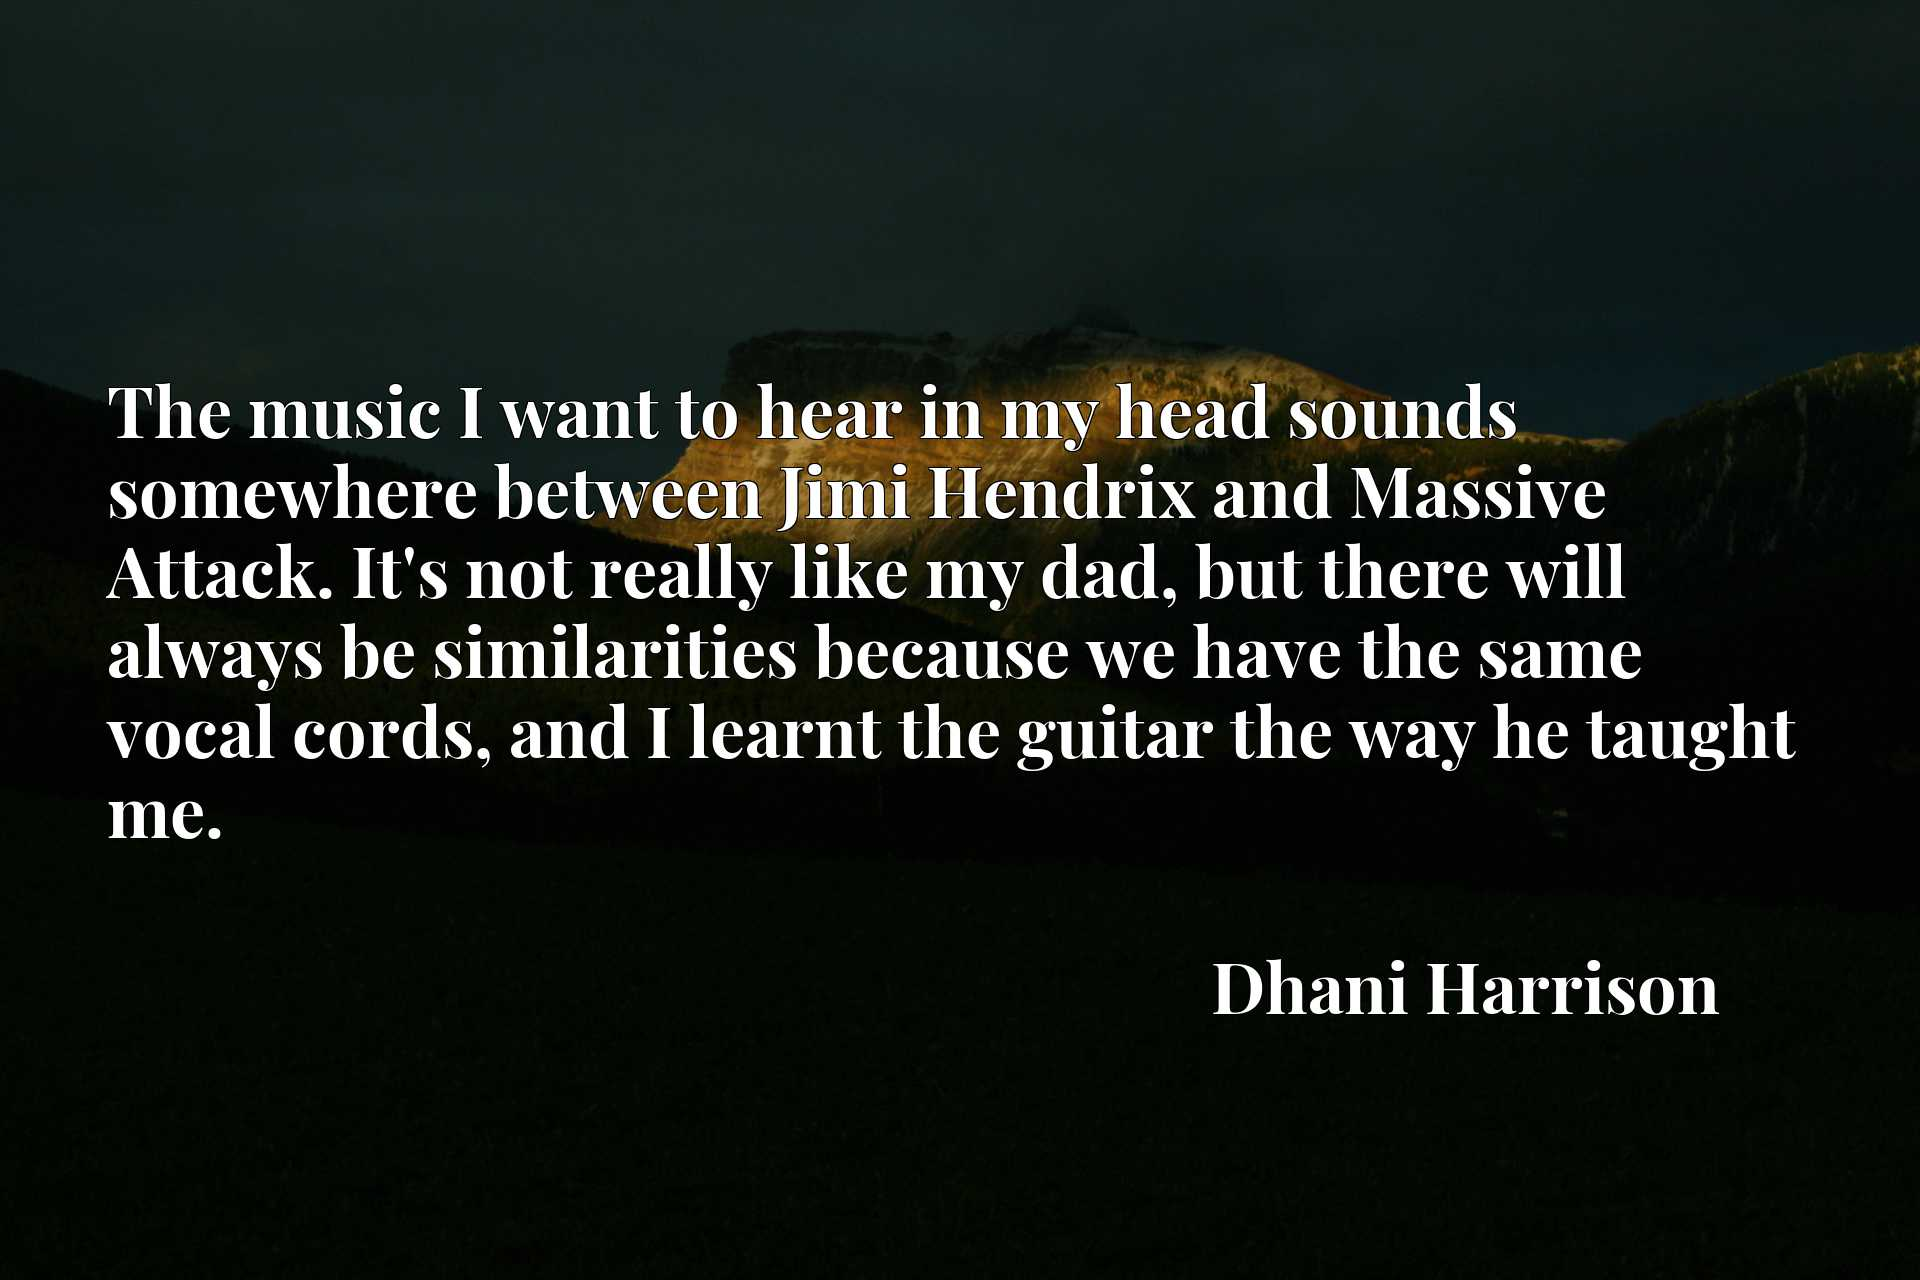 The music I want to hear in my head sounds somewhere between Jimi Hendrix and Massive Attack. It's not really like my dad, but there will always be similarities because we have the same vocal cords, and I learnt the guitar the way he taught me.